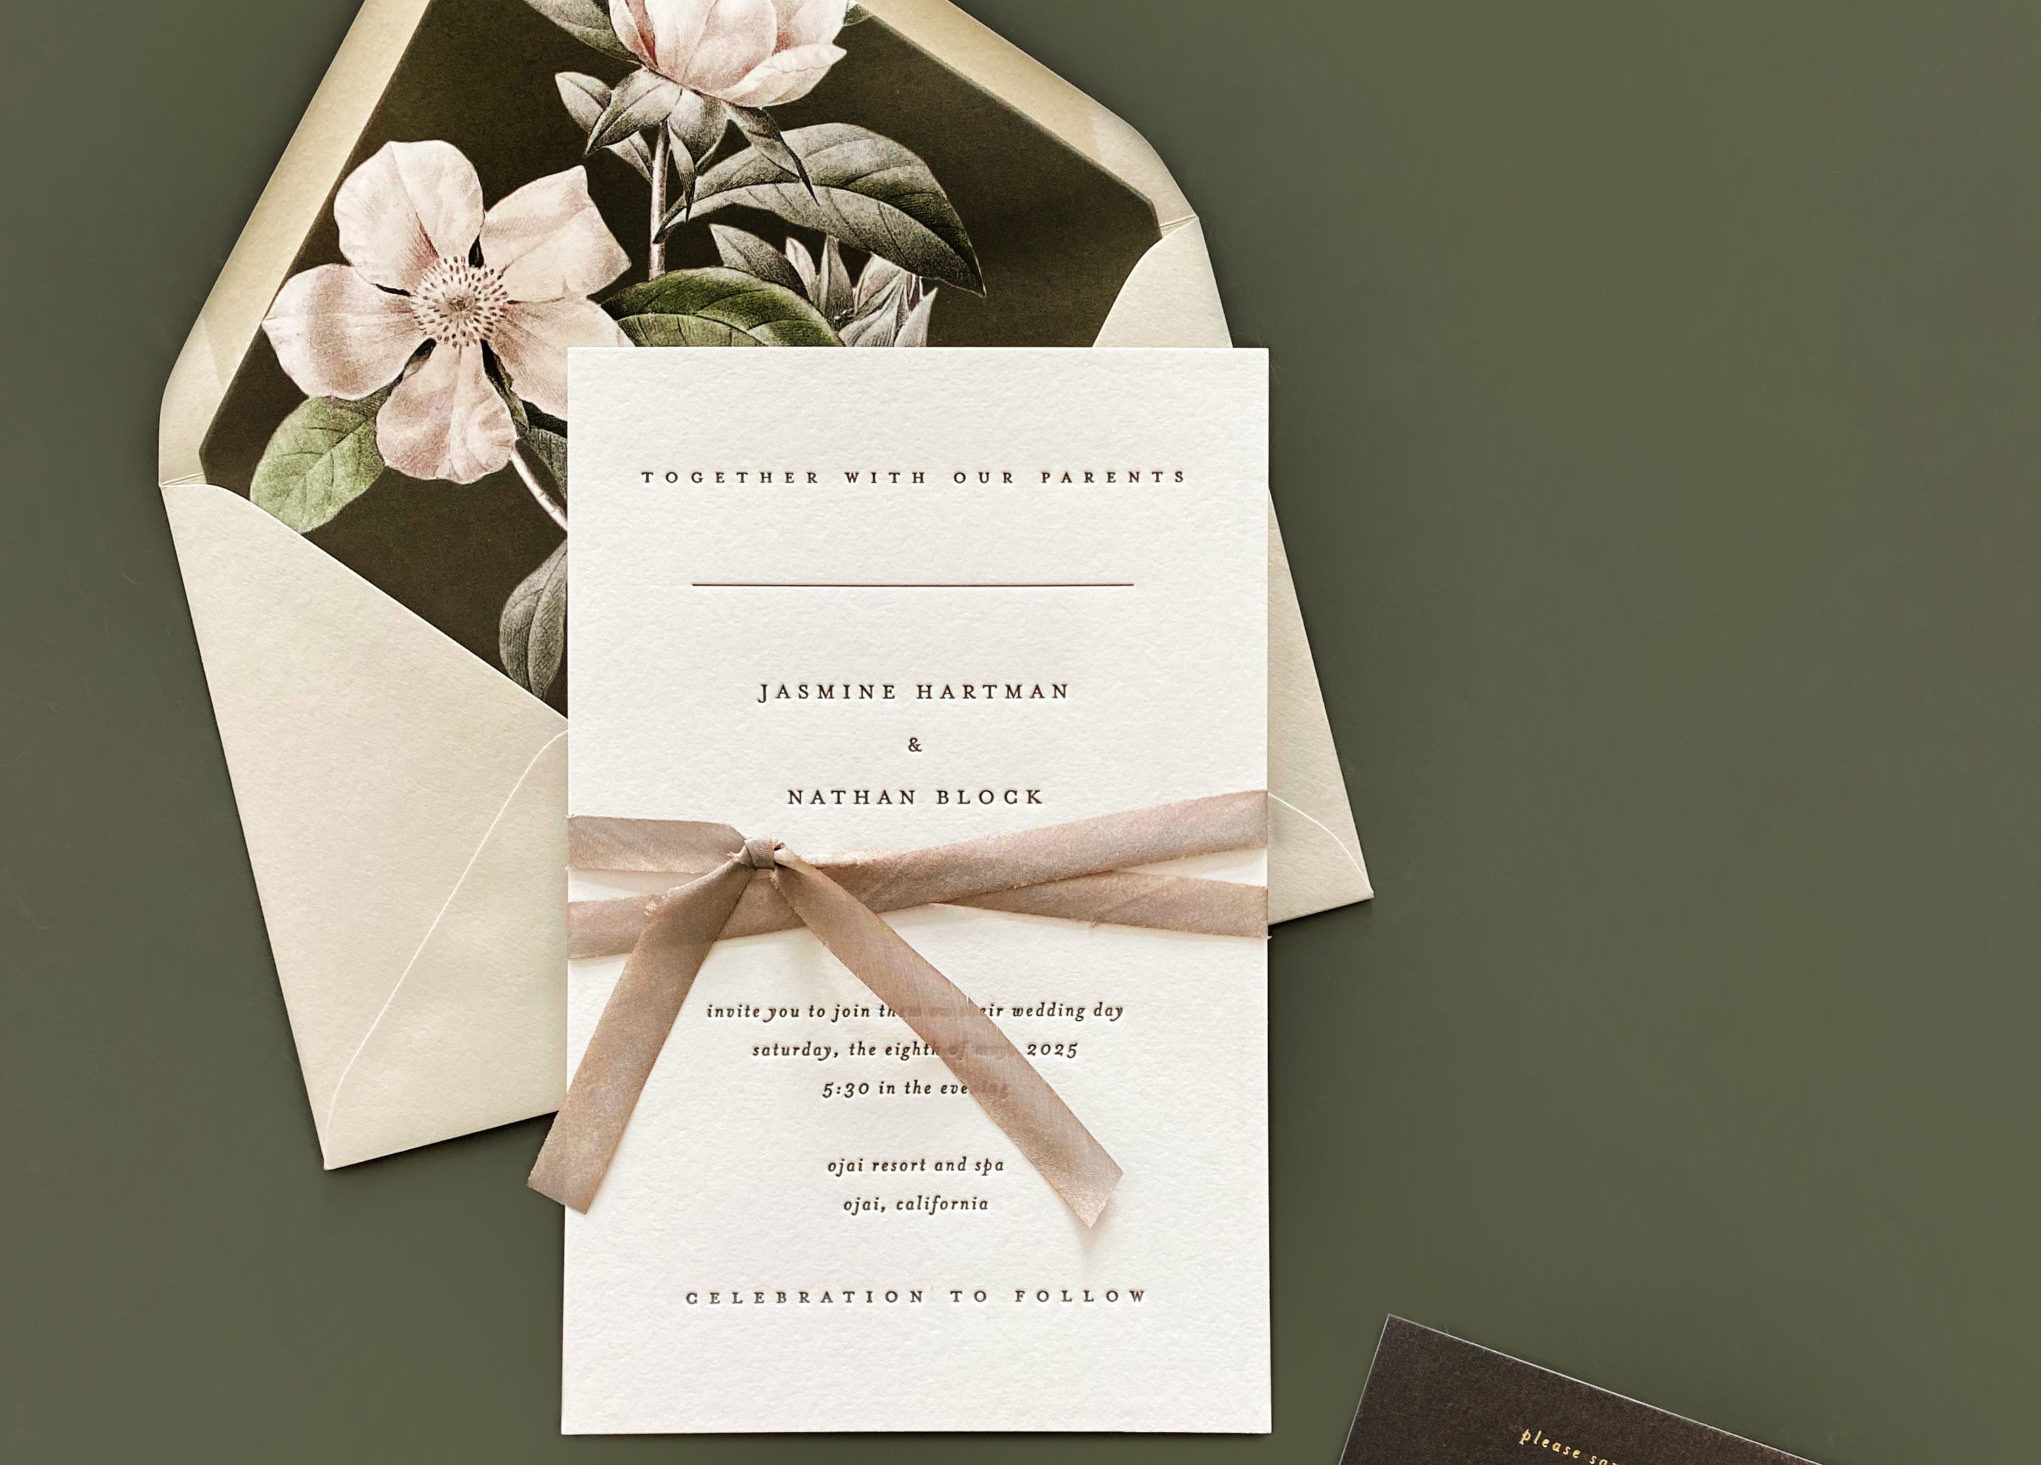 Simple letterpress invitation is embellished with a hand-dyed silk ribbon and accented with a pretty floral pattern on insert and envelope liner.